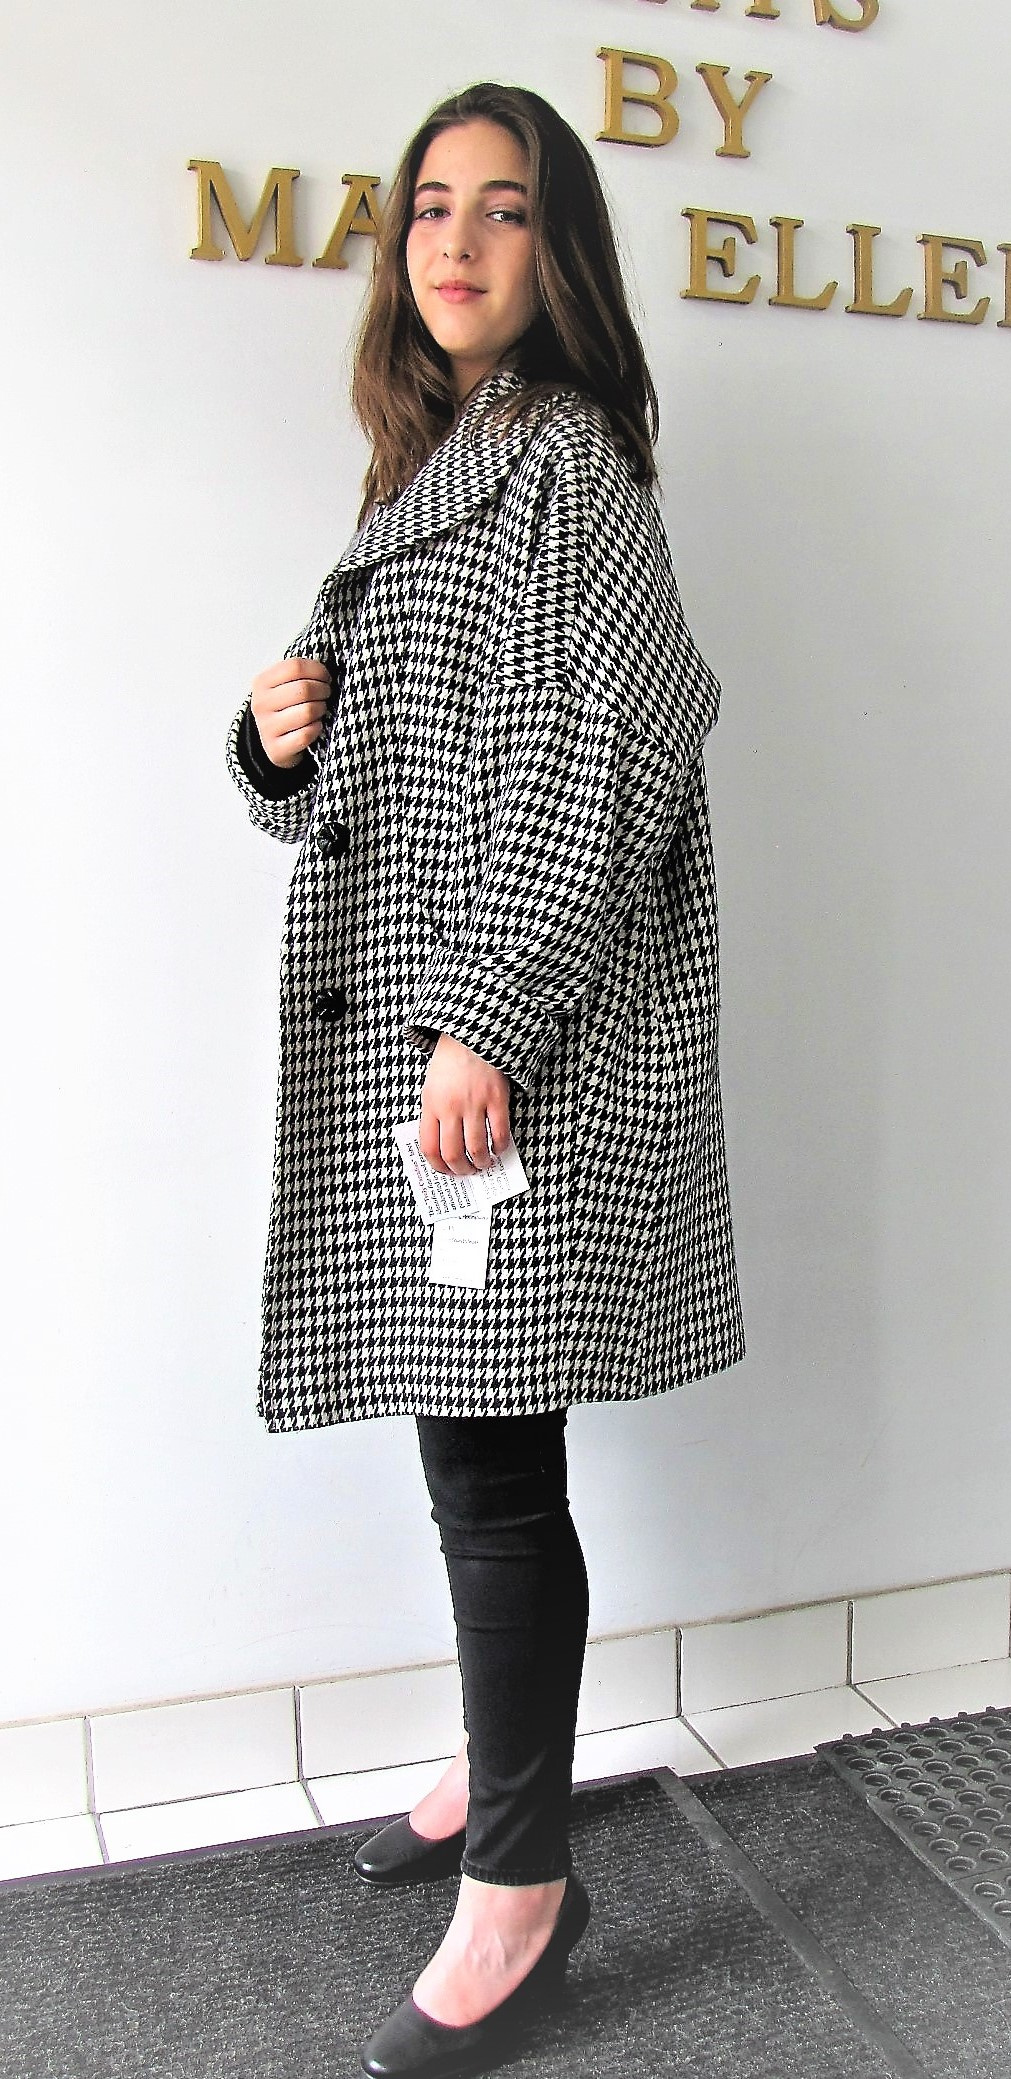 Style #B6423-7   Houndstooth 100% Pure Virgin Wool  Features:  Don't underestimate the allure of  oversized clothing, Especially when it comes to  luxe outerwear like this wool coat featuring   wide lapels and dropped  shoulders.  A must to compliment your wardrobe.   Fully chamois lined.  Extra button included.  In-Stock Colour:  Houndstooth pattern,  or can be custom made in the colour  of your choice.  Fabric Made in Italy: 100% Pure Virgin Wool or  can be custom  made in the fabric of your choice.    Sizes:  S, M, L  Price:  $449 and up